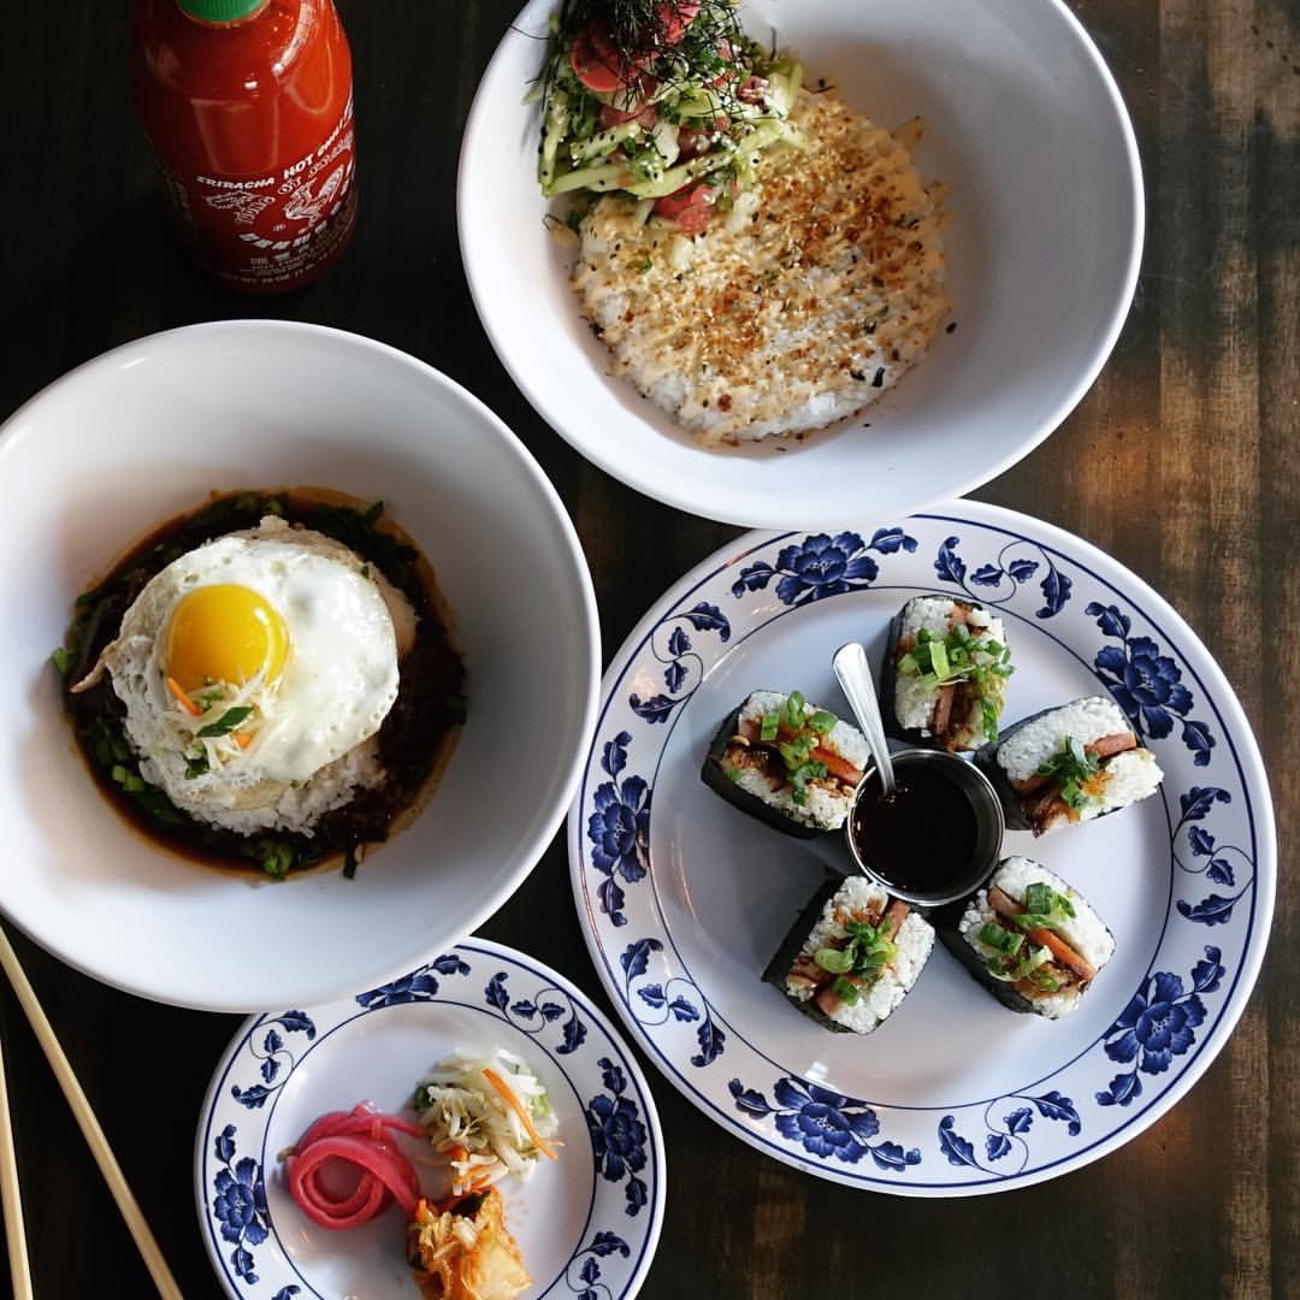 Quan Hapa (located in OTR) bills itself as an Asian street food restaurant. ADDRESS: 1331 Vine St (45202) / Image: Phil Armstrong, Cincinnati Refined // Published: 1.10.17